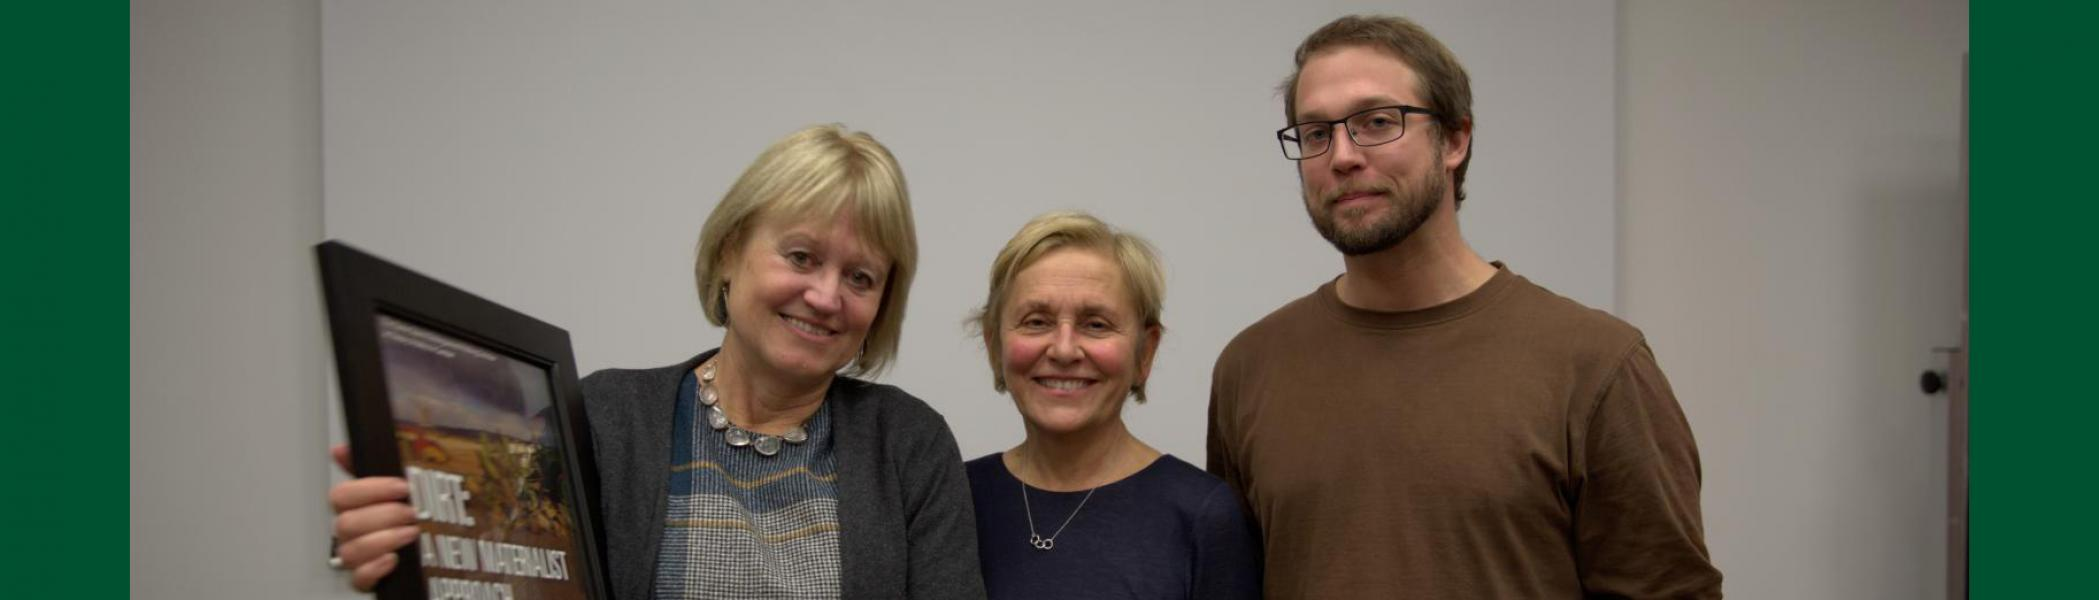 Diane Coole (Guest Speaker), Elaine Stavro (Faculty), Graeme Bishop (TCP MA Student). Diane was a guest speaker at Trent for the Stavro Lecture November 17, 2016